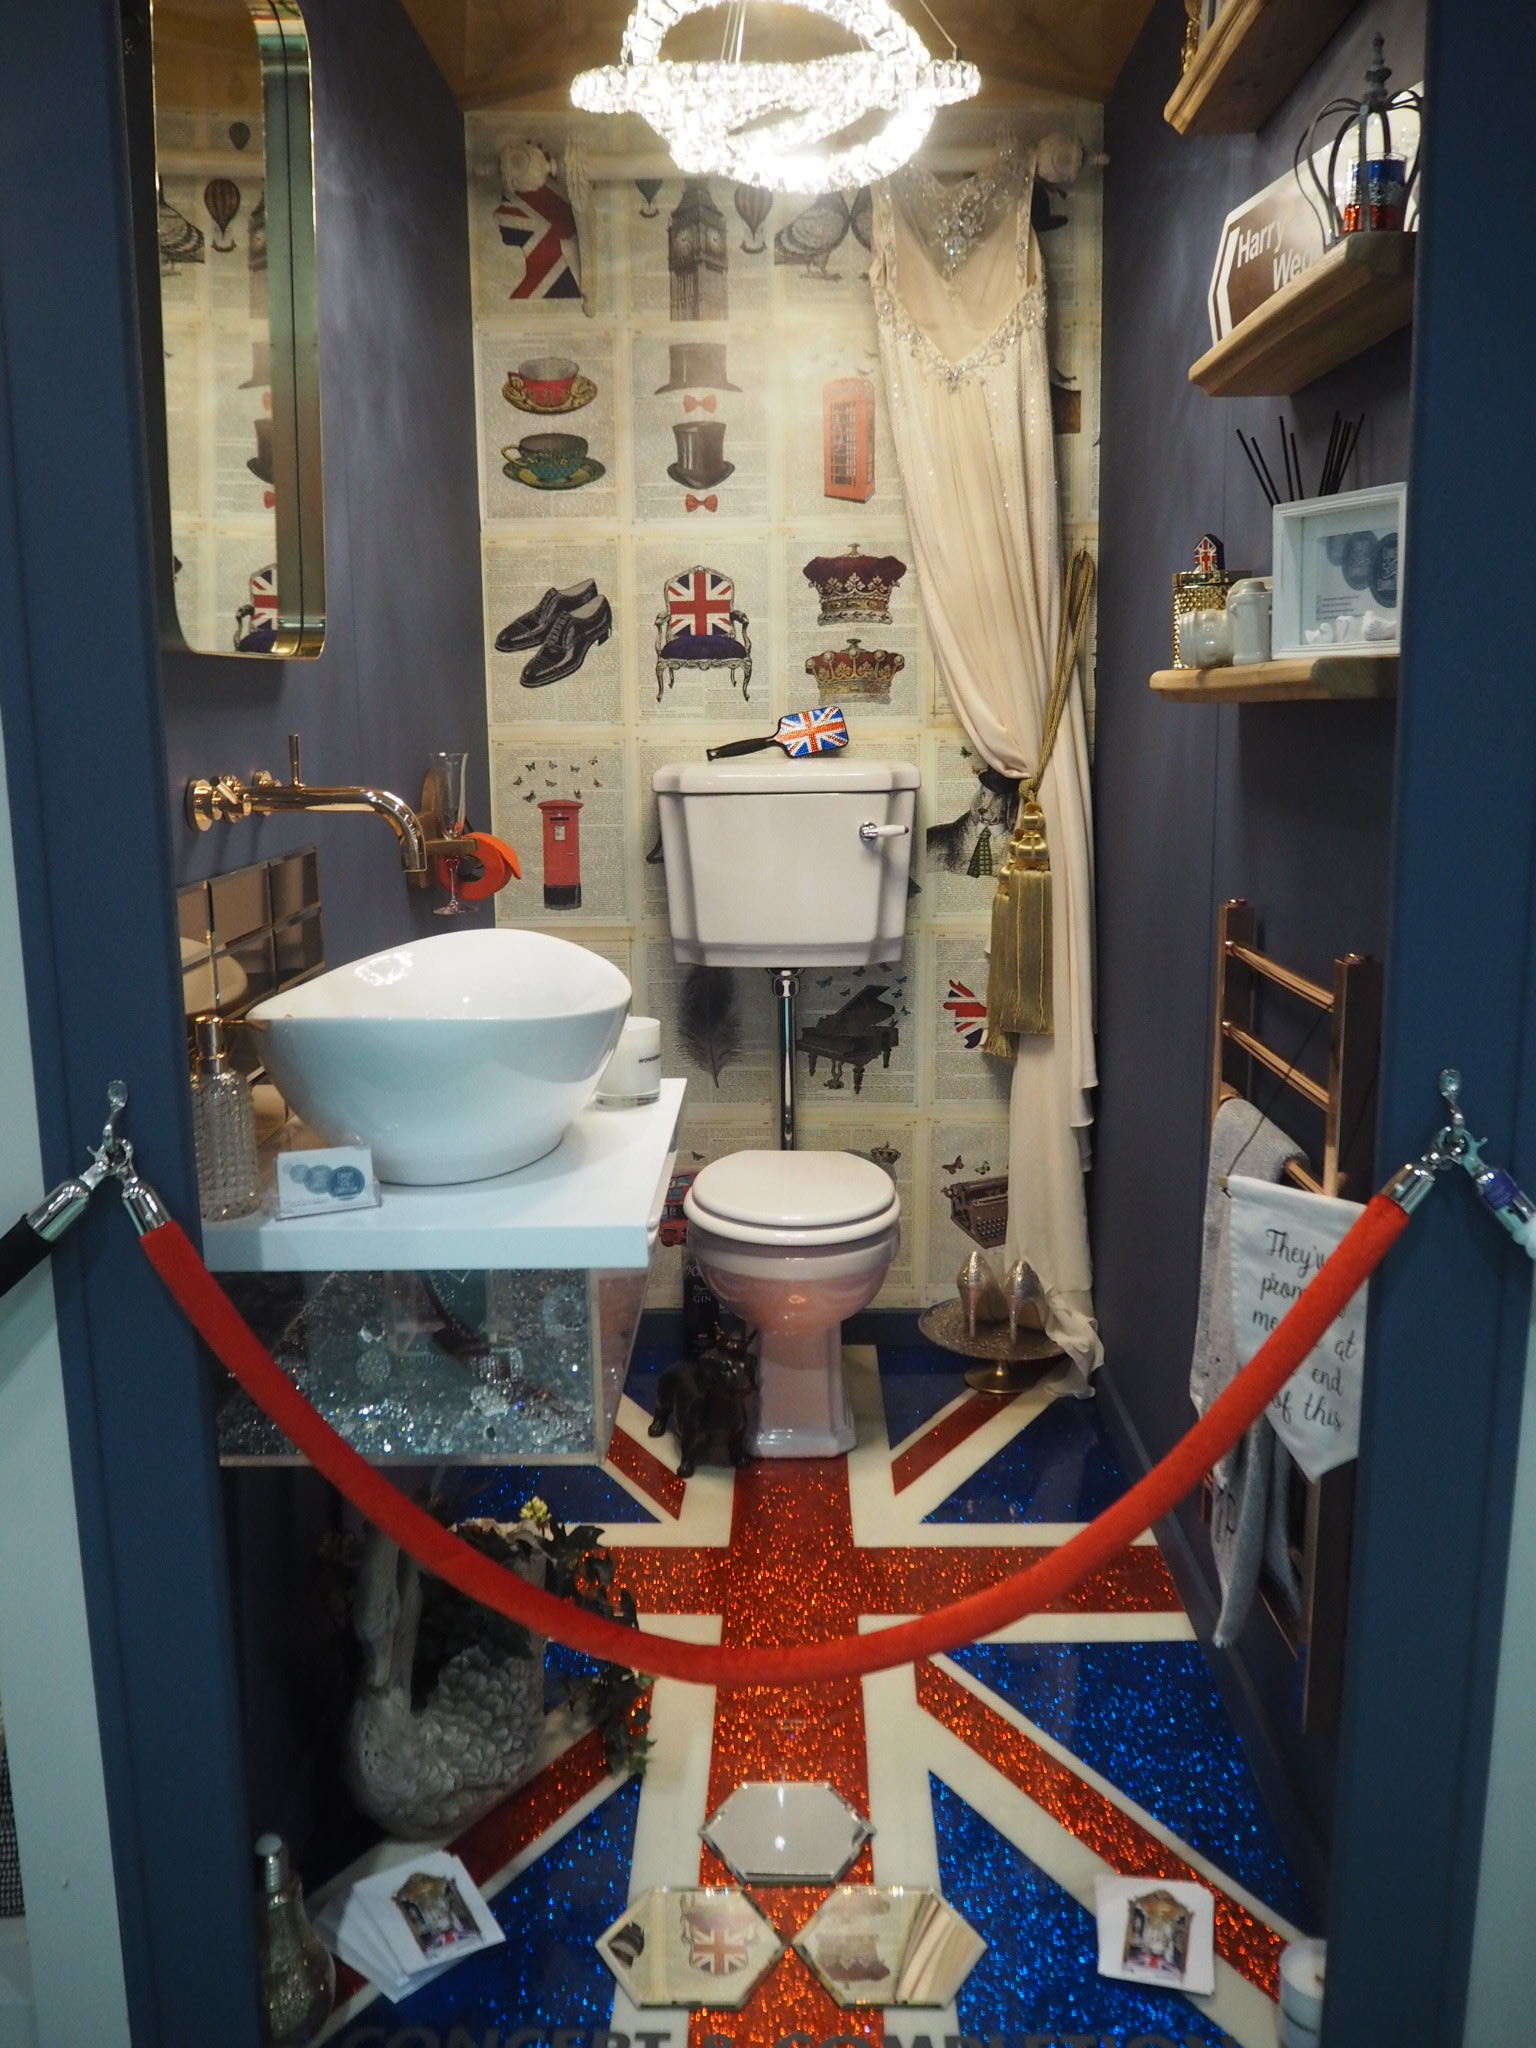 God Save the Queen, and her throne :)